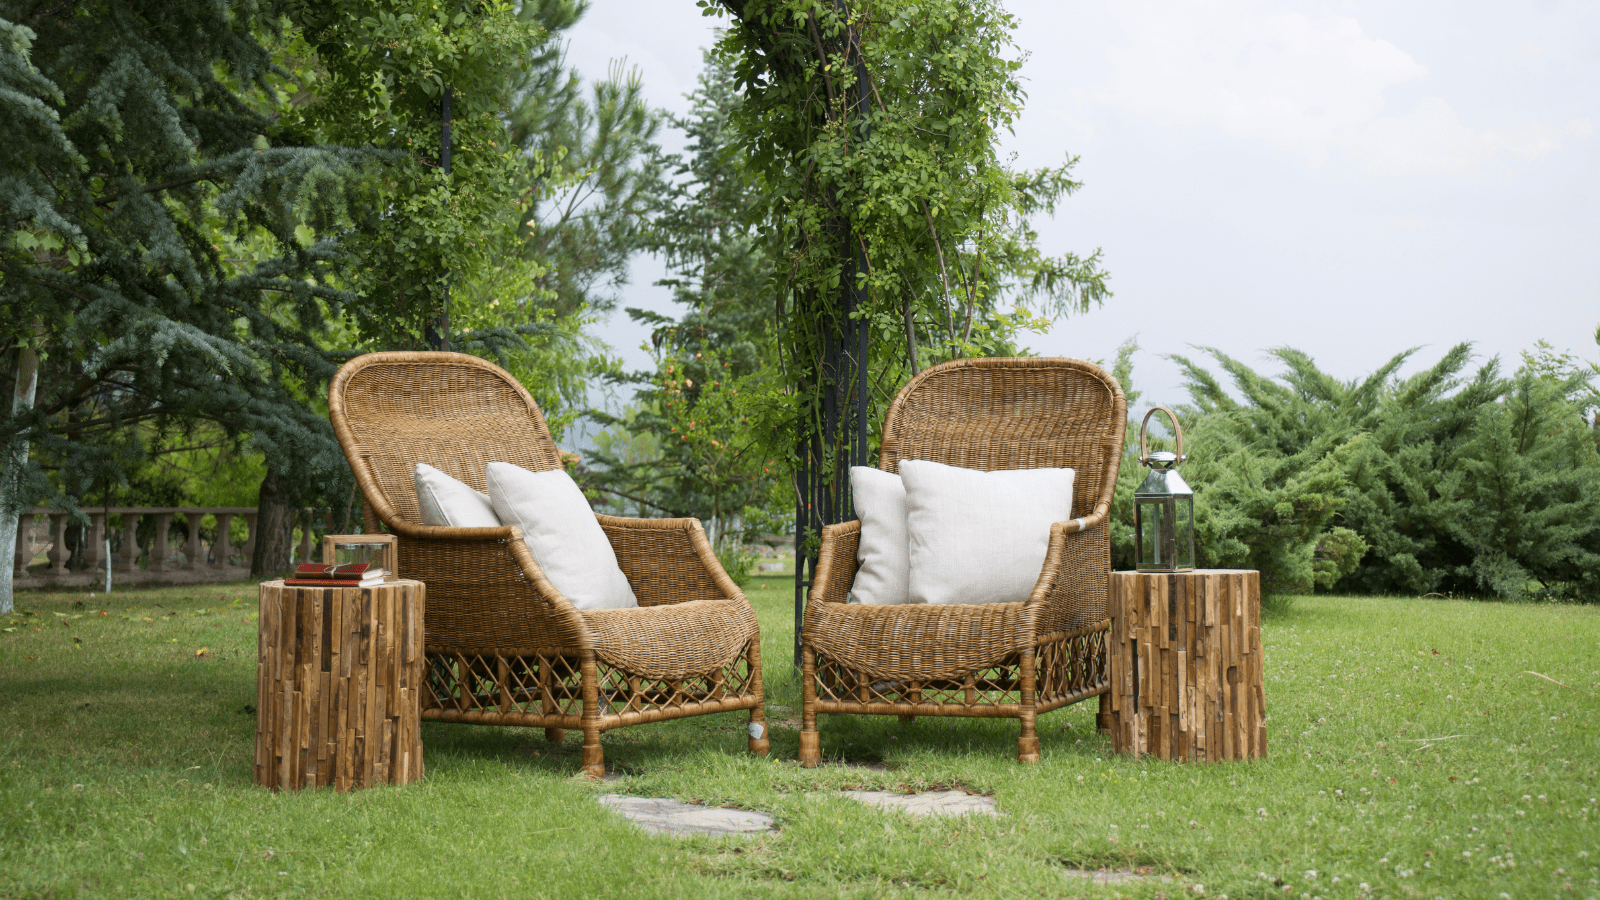 Garden Decorating Tips For This Summer